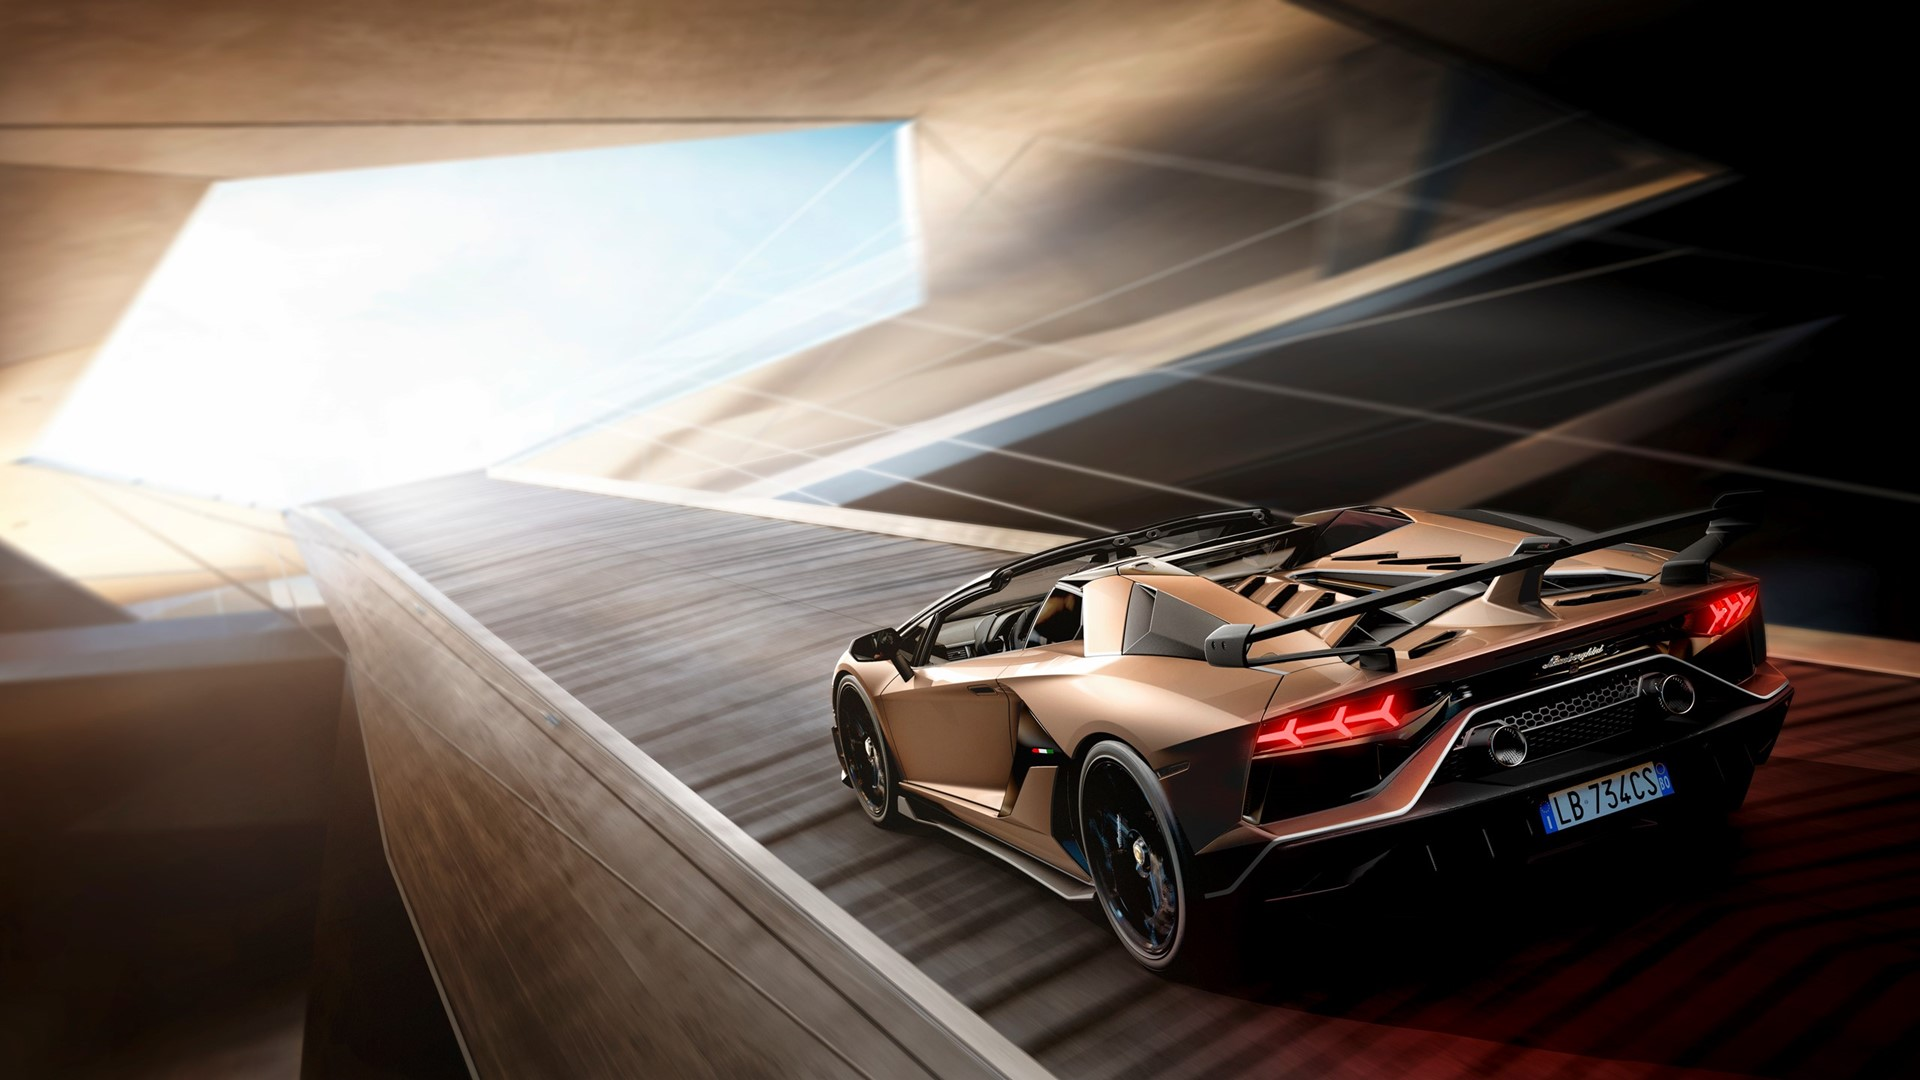 Automobili Lamborghini continues its global growth and marks new historic highs: 8,205 cars delivered in 2019 - Image 2